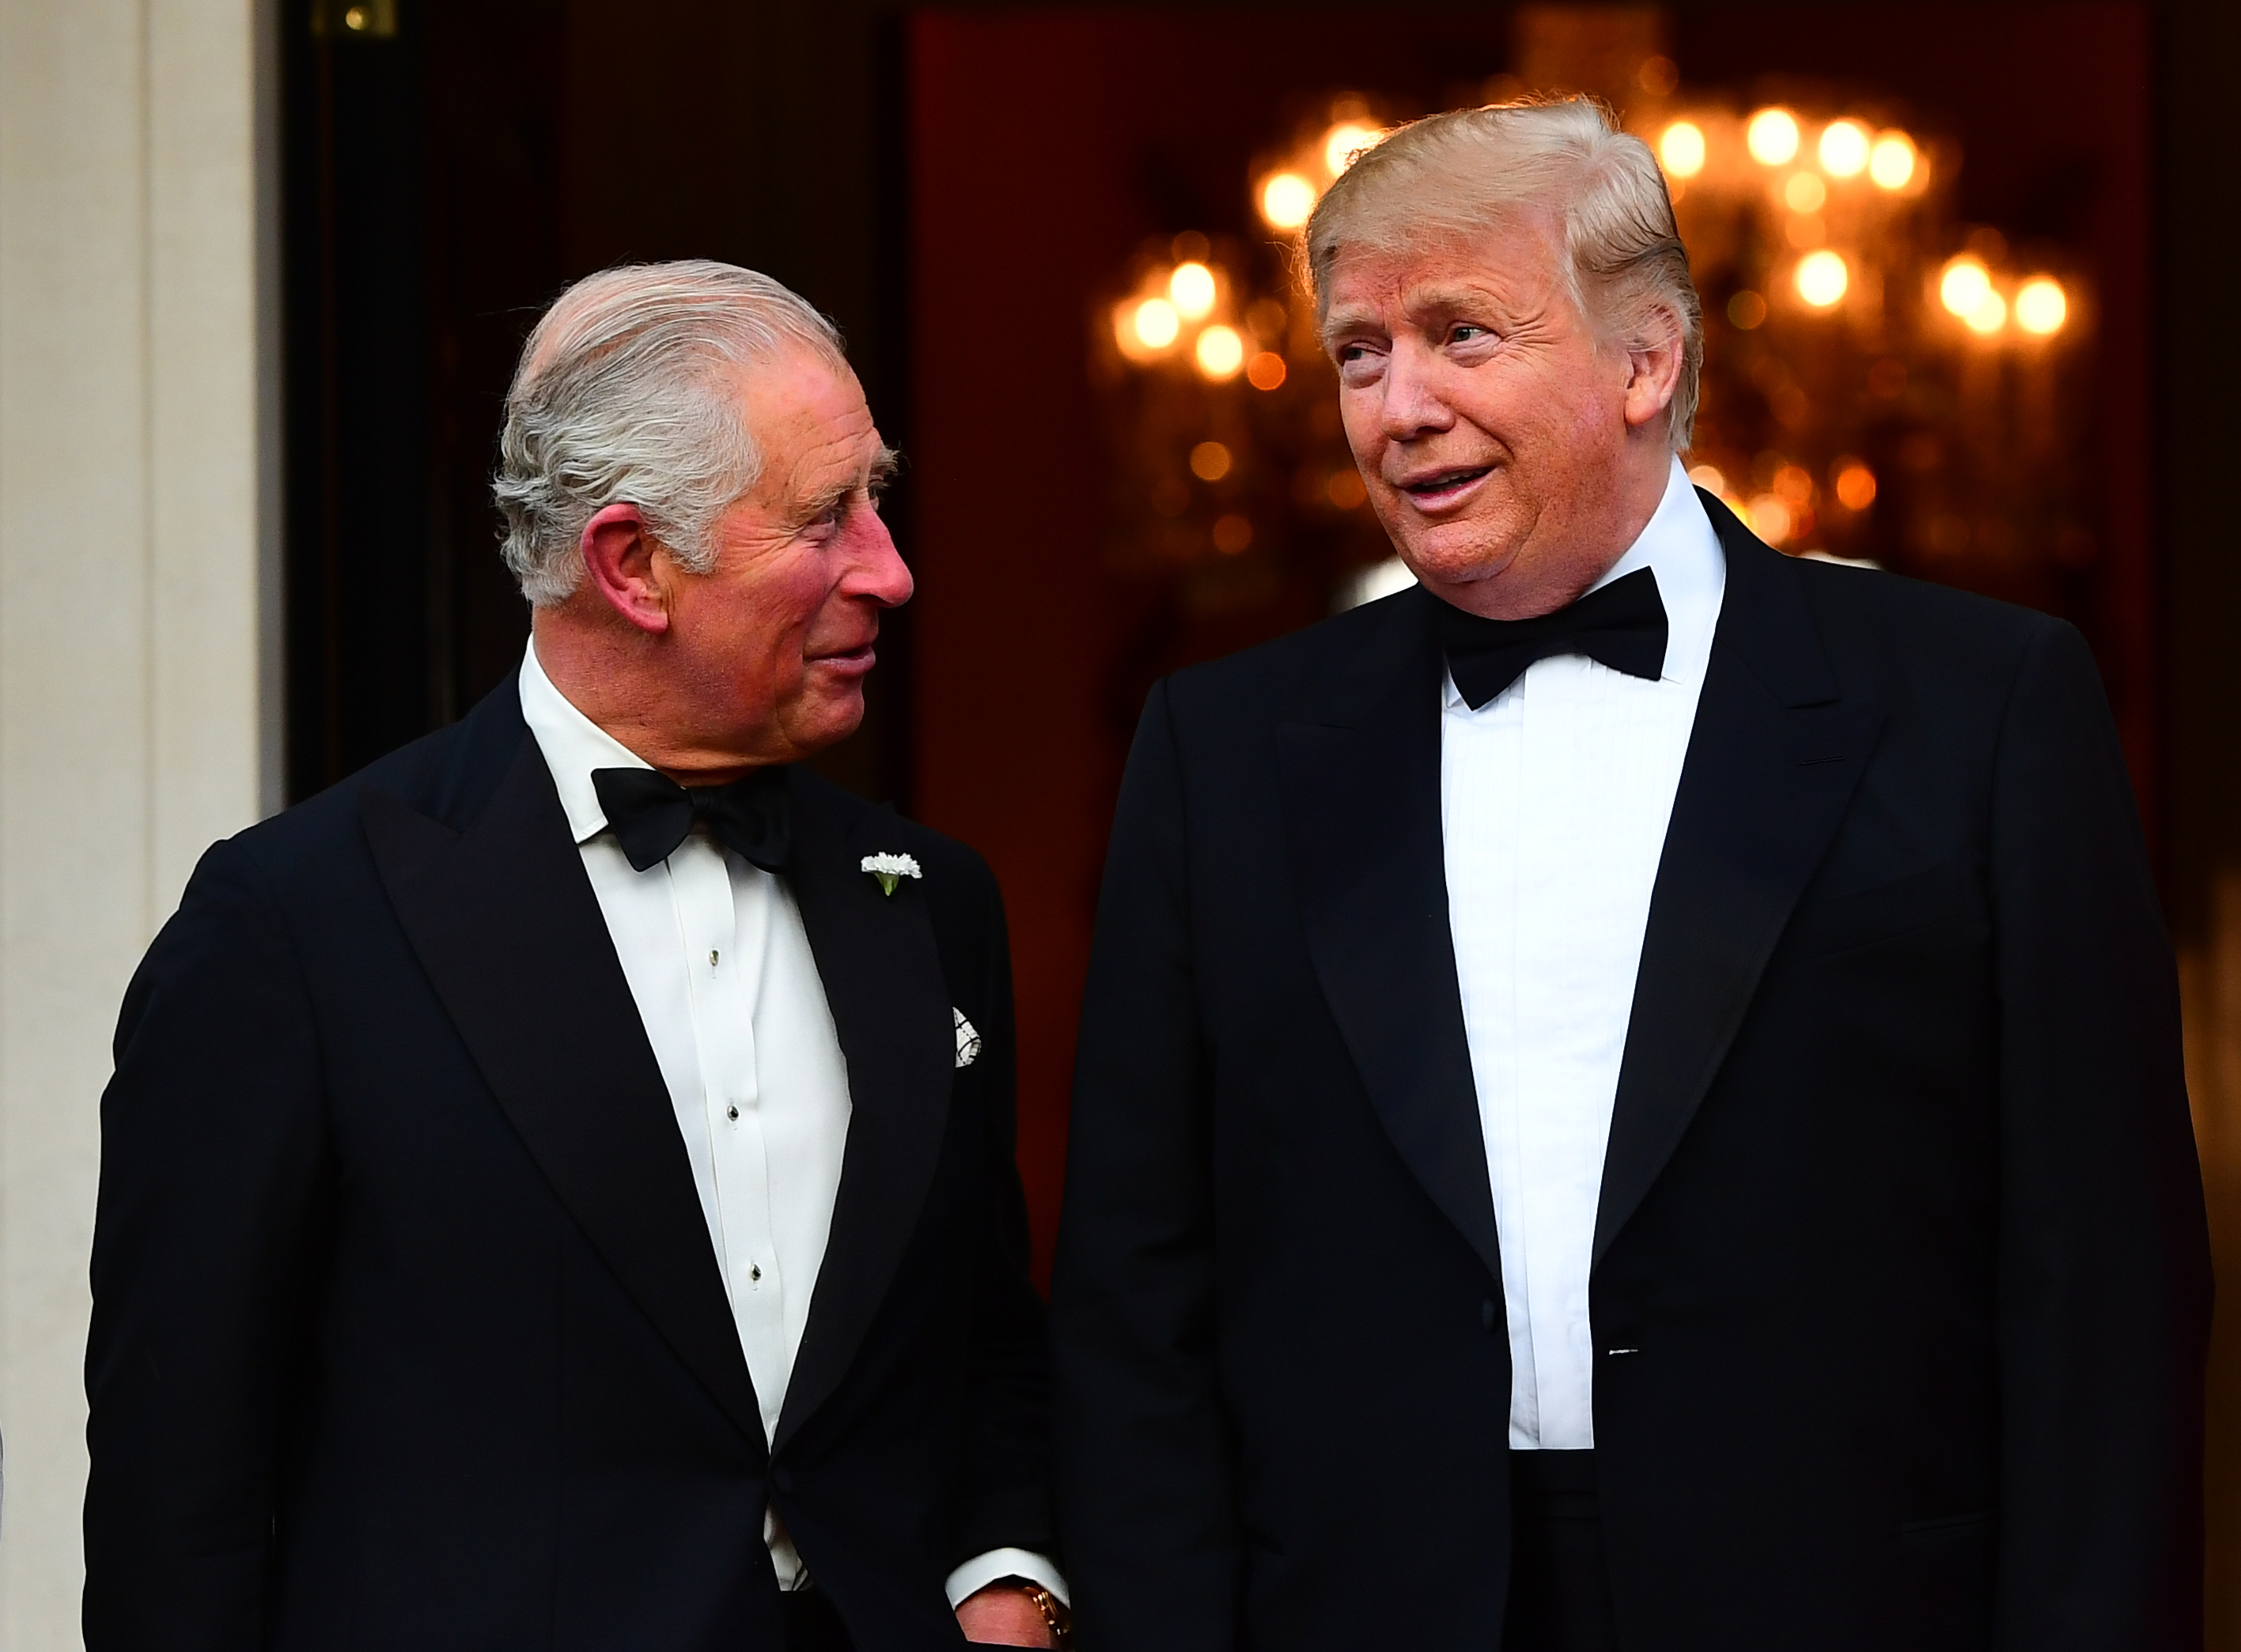 The Prince of Wales and Donald Trump